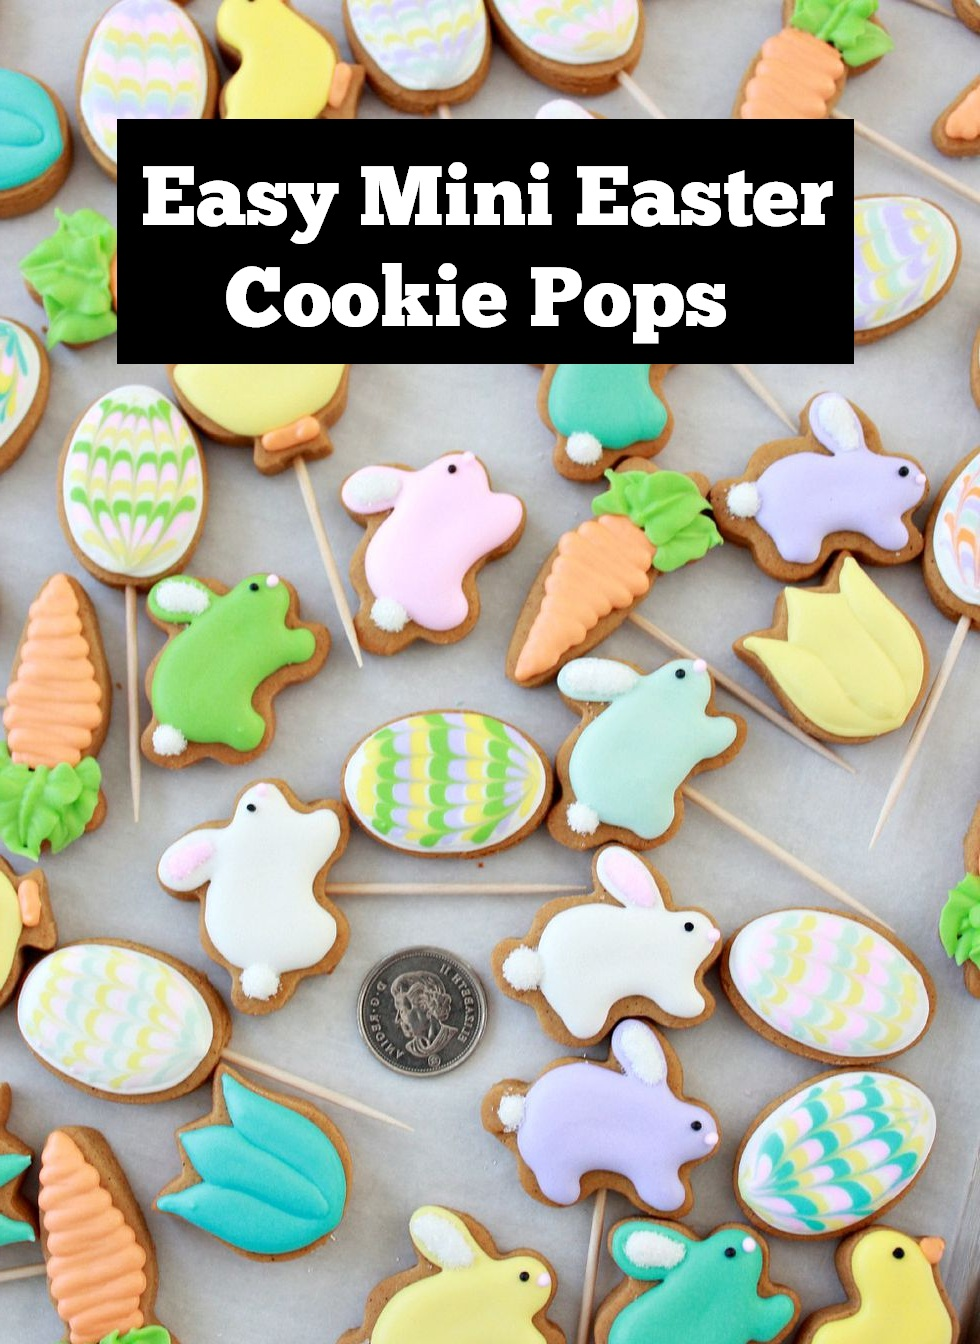 Easy Mini Easter Cookie Pops Recipe | Easter Pops Recipe | Easter Treats Recipe | Easy Easter Recipe | Easter Cookie Recipe | Easter Cookie Pops Recipe | Kids Food Recipe | Easter Mini Cookie Recipe #easter #cookie #cookiepops #cookierecipe #eastertreats #kidsfoodrecipe #easycookie #dessert